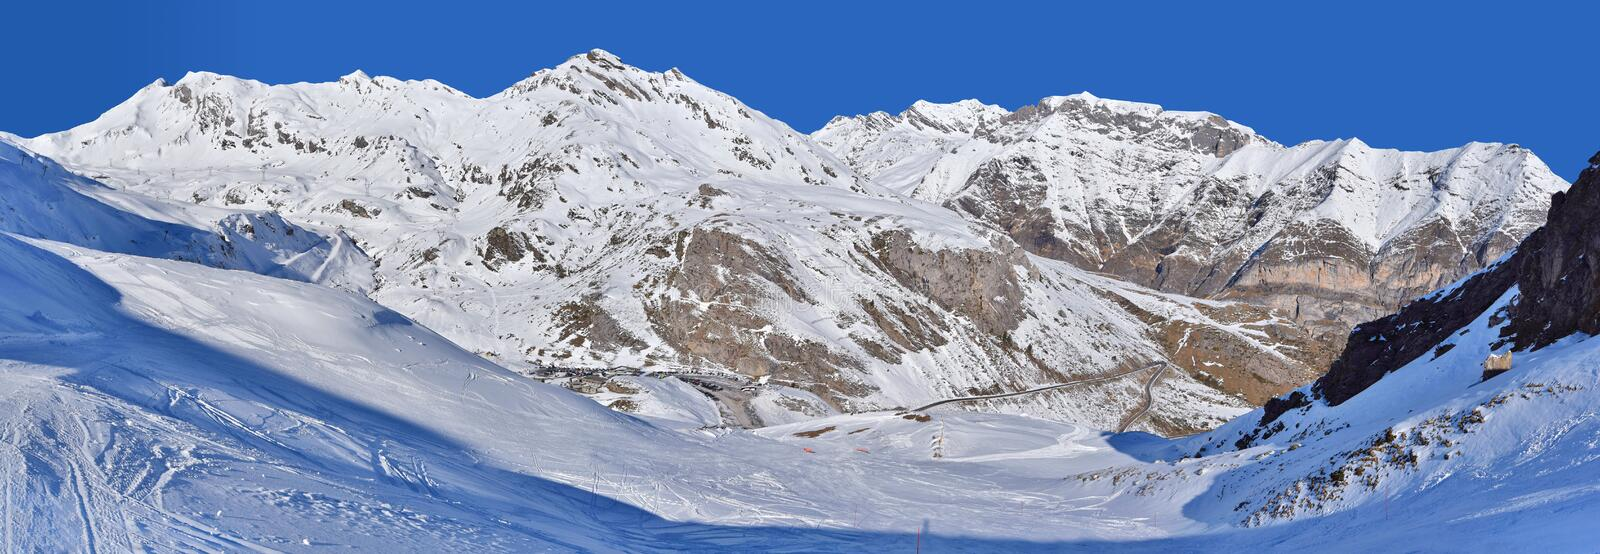 Snow downhill in the winter mountains stock images